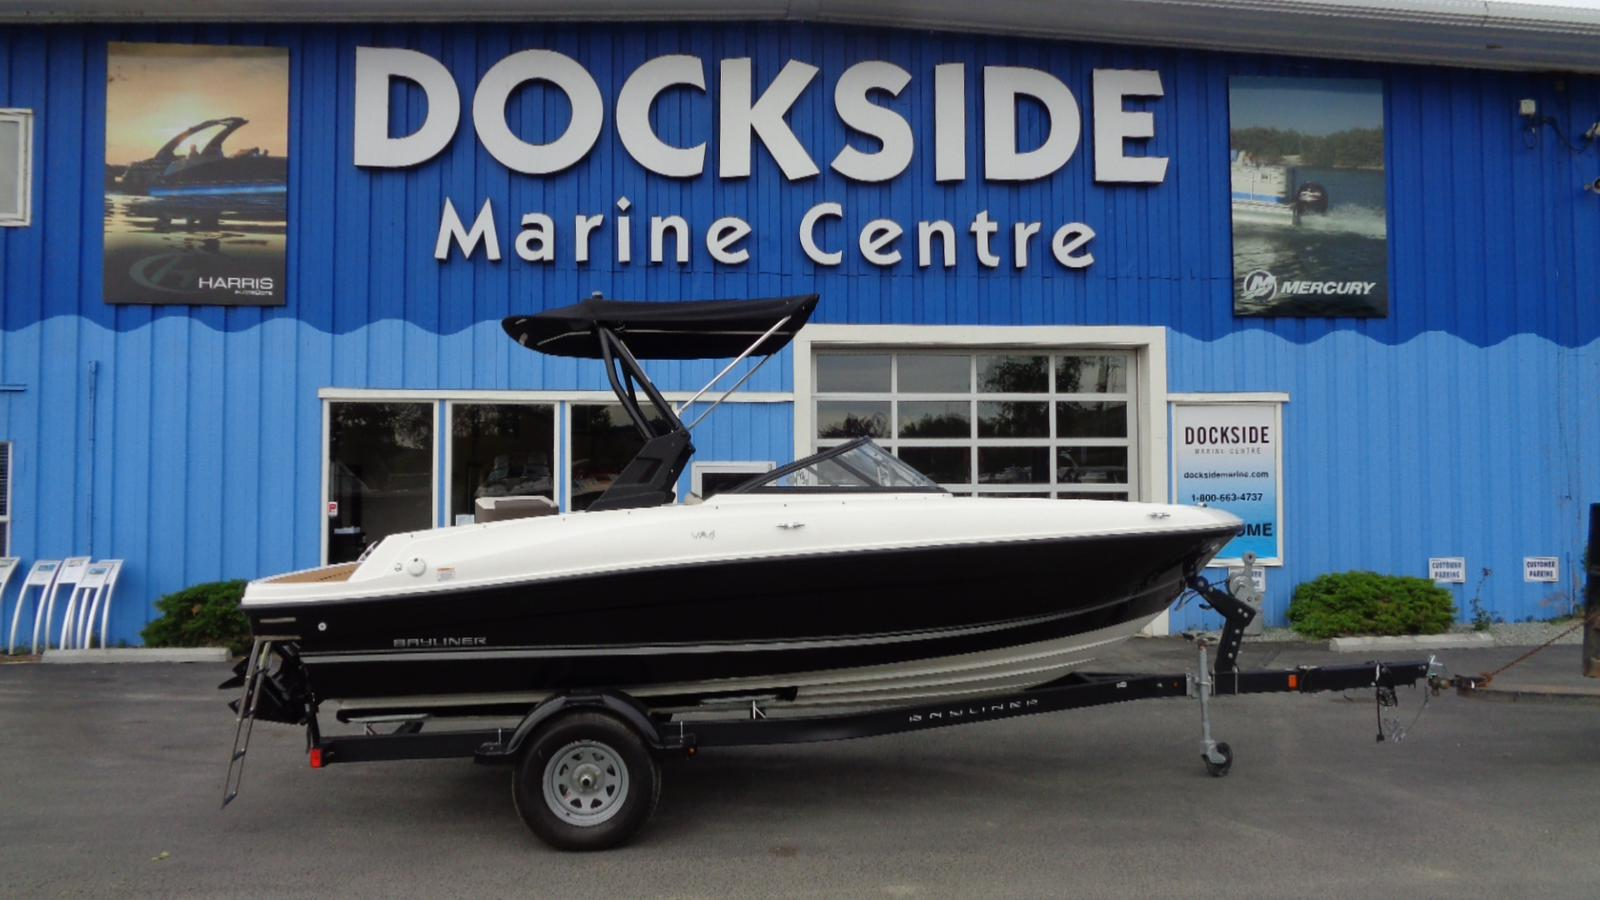 For Sale: 2018 Bayliner Vr4 18ft<br/>Dockside Marine Centre, LTD.